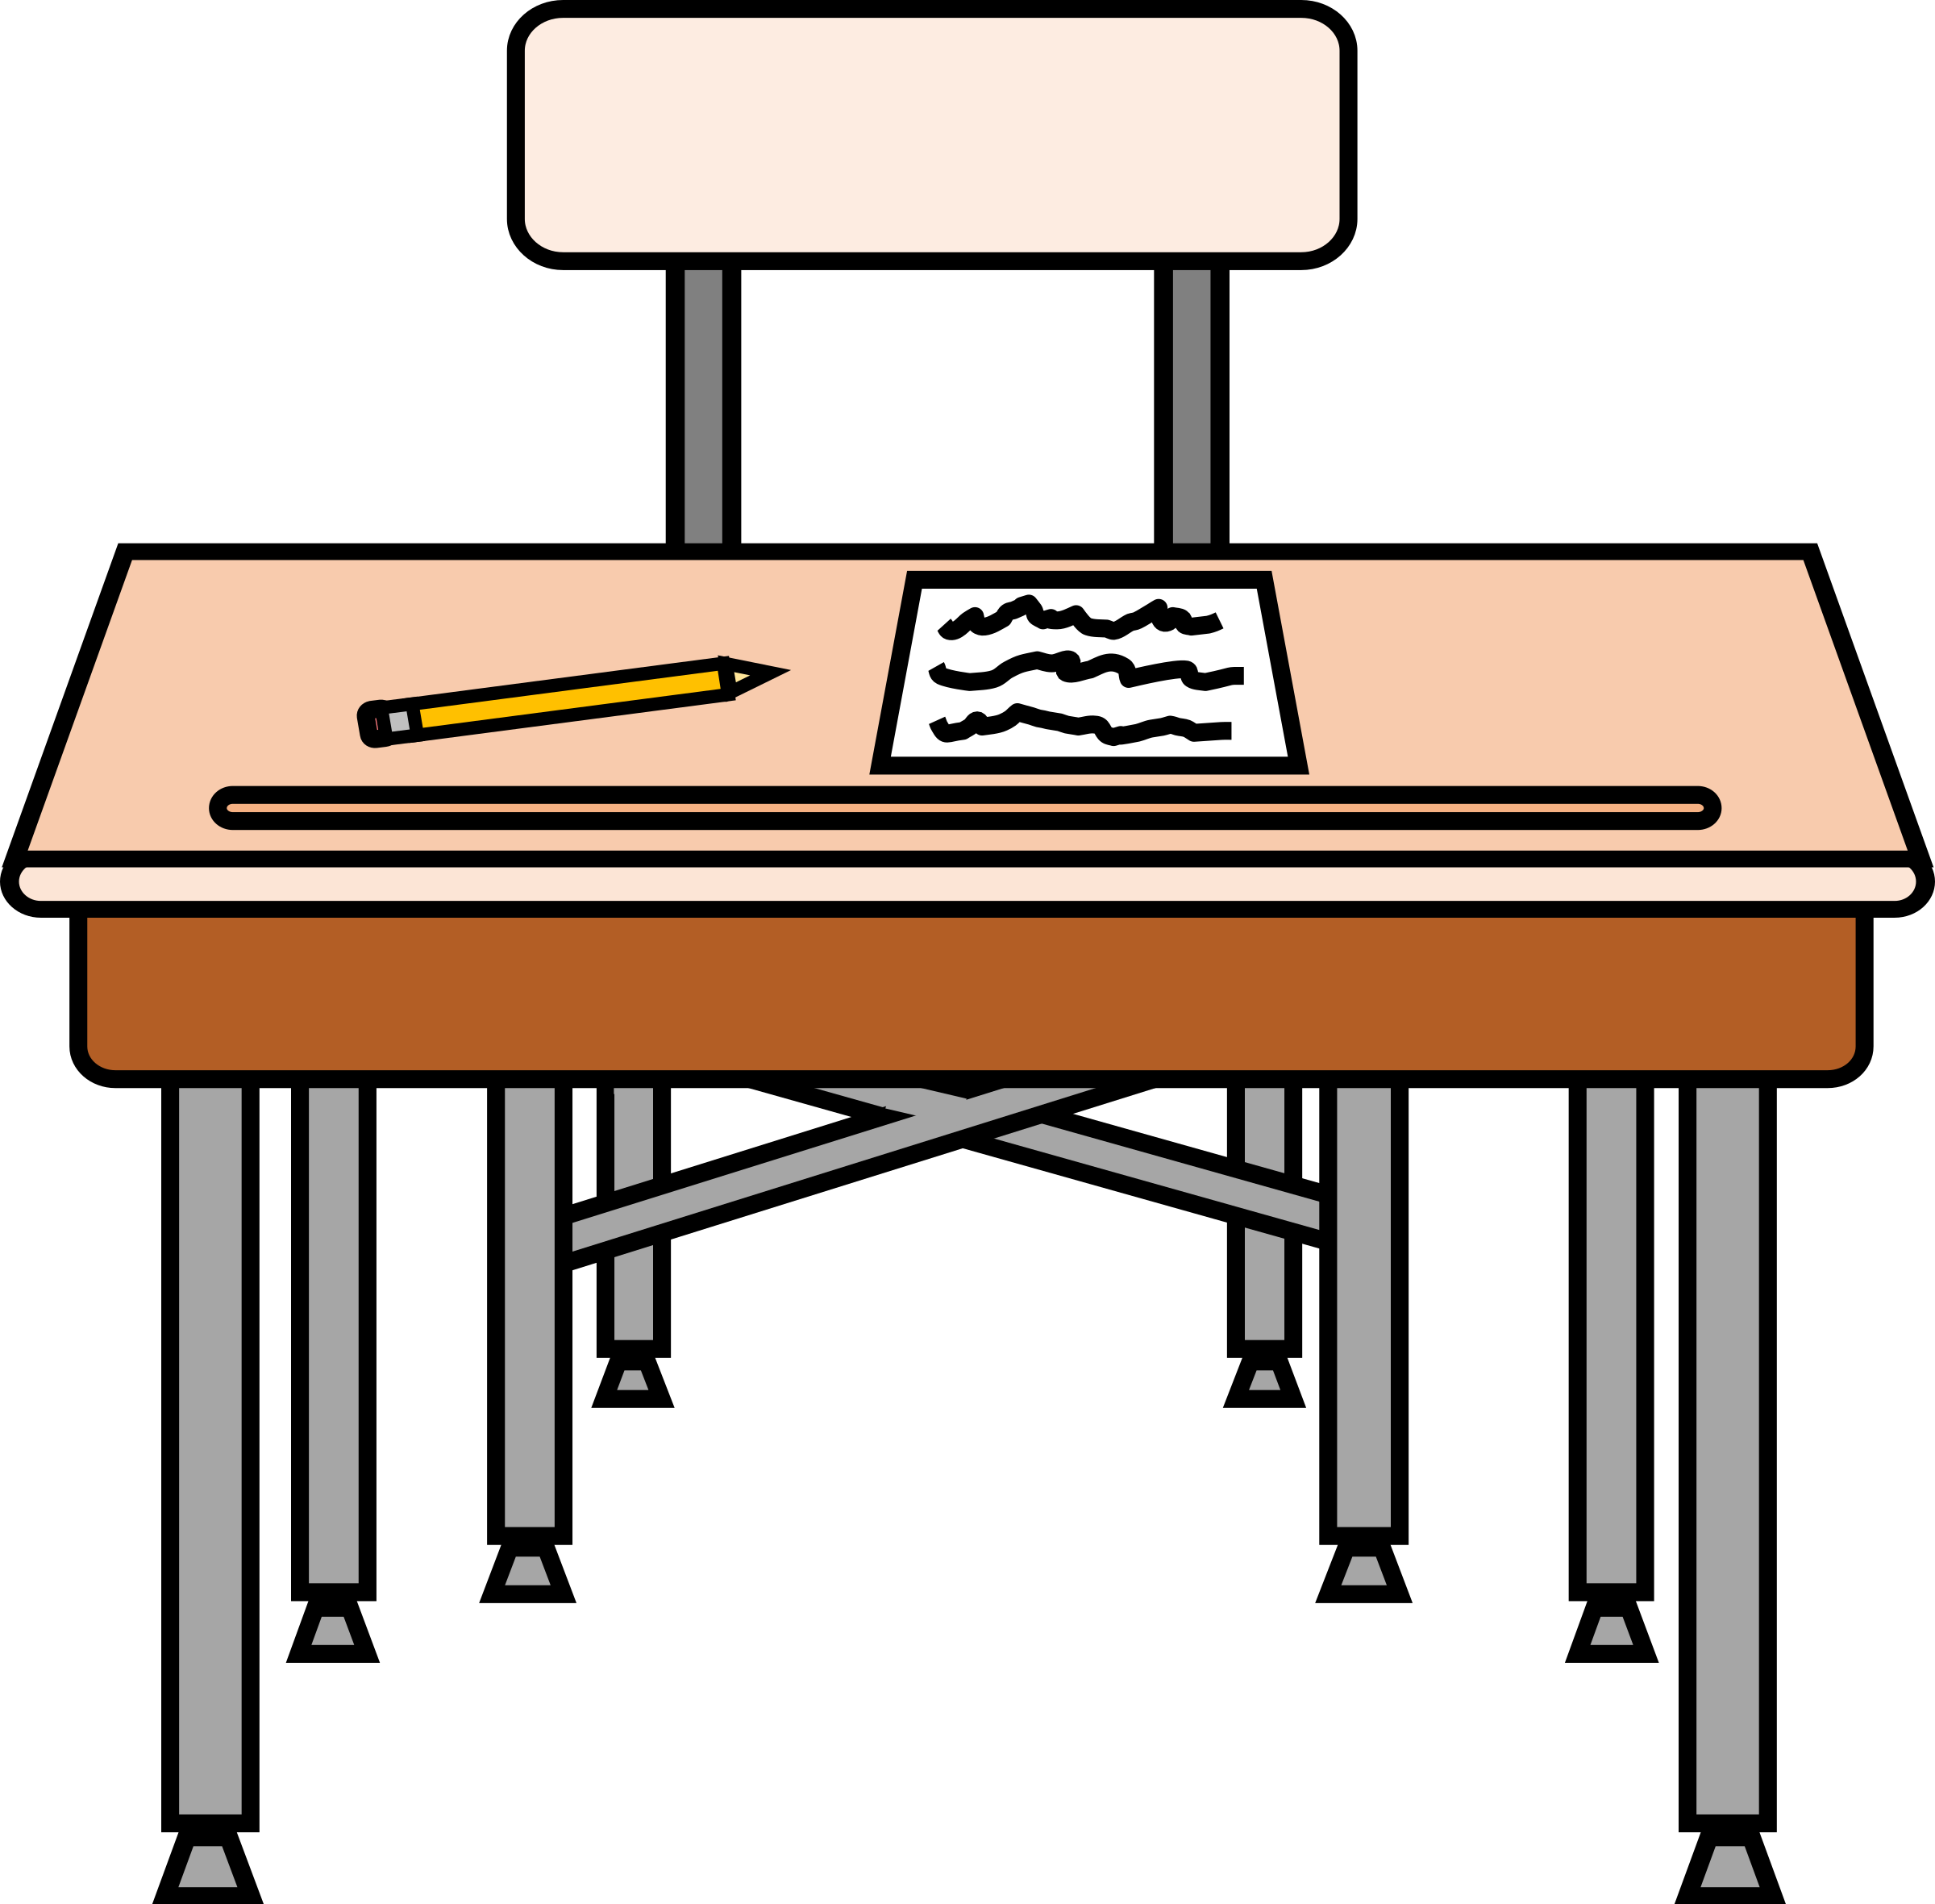 Pastor clipart desk, Pastor desk Transparent FREE for.